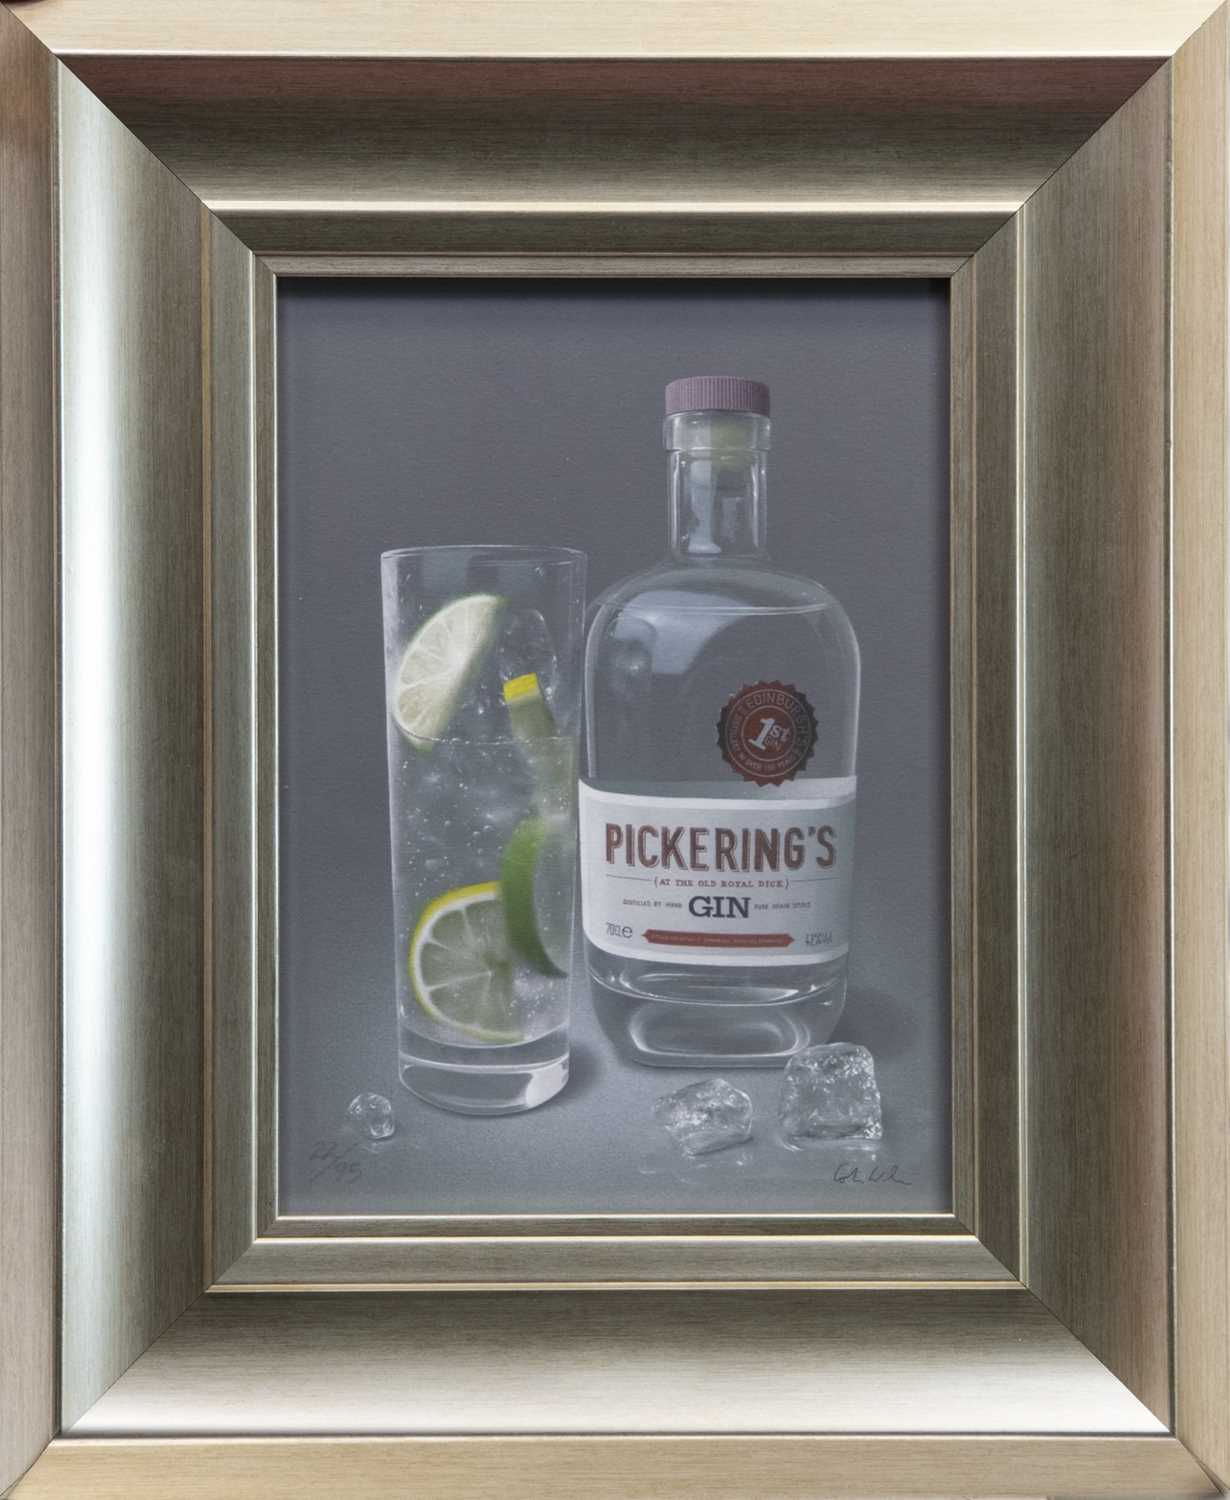 Lot 66 - PICKERING'S GIN, A GICLEE PRINT BY COLIN WILSON